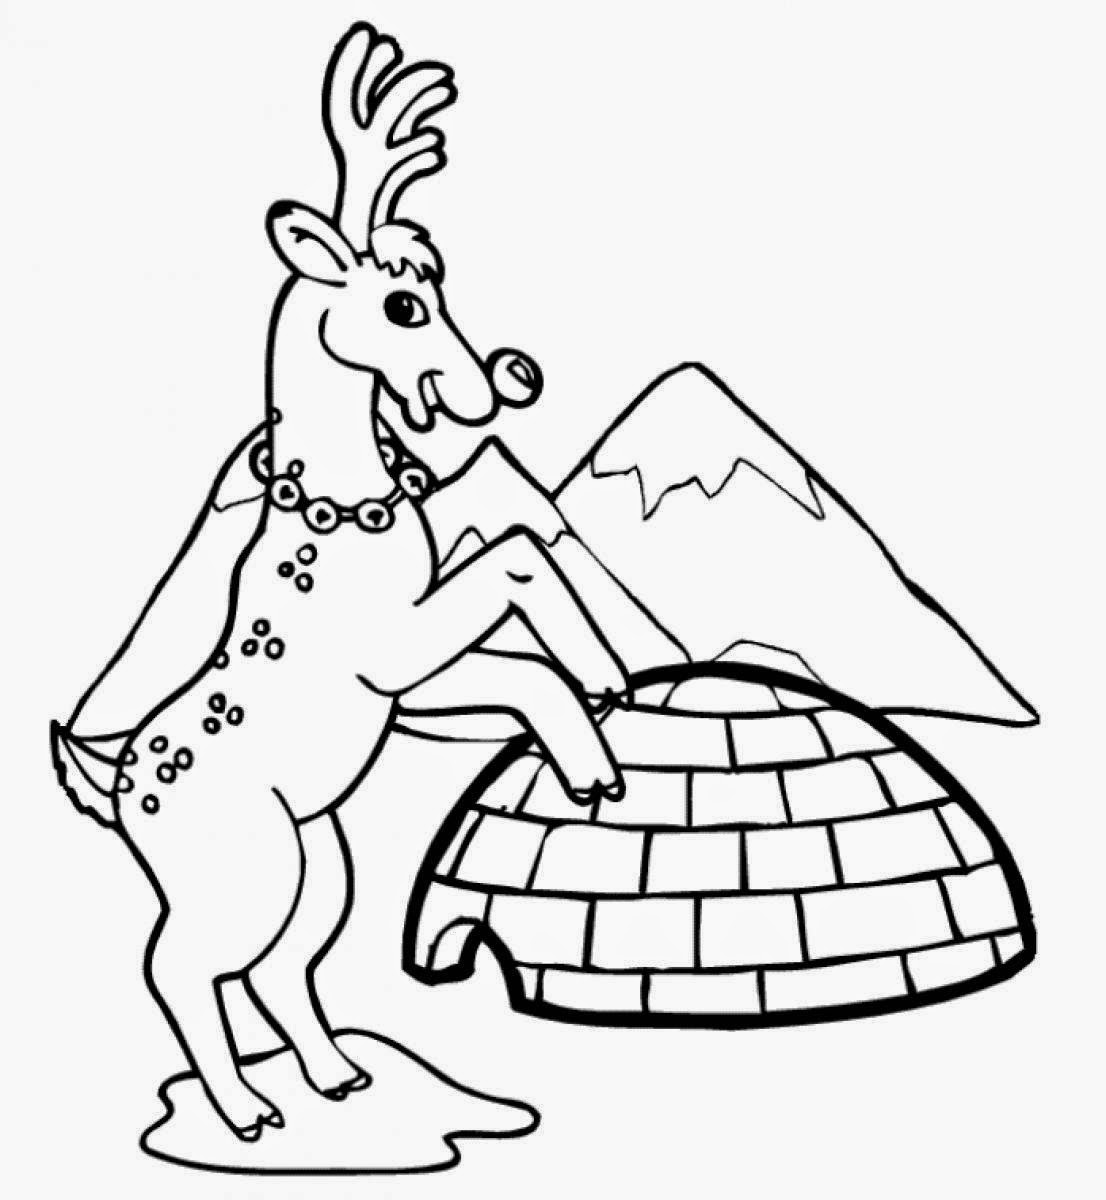 winter coloring sheets printable winter coloring pages to download and print for free sheets coloring printable winter